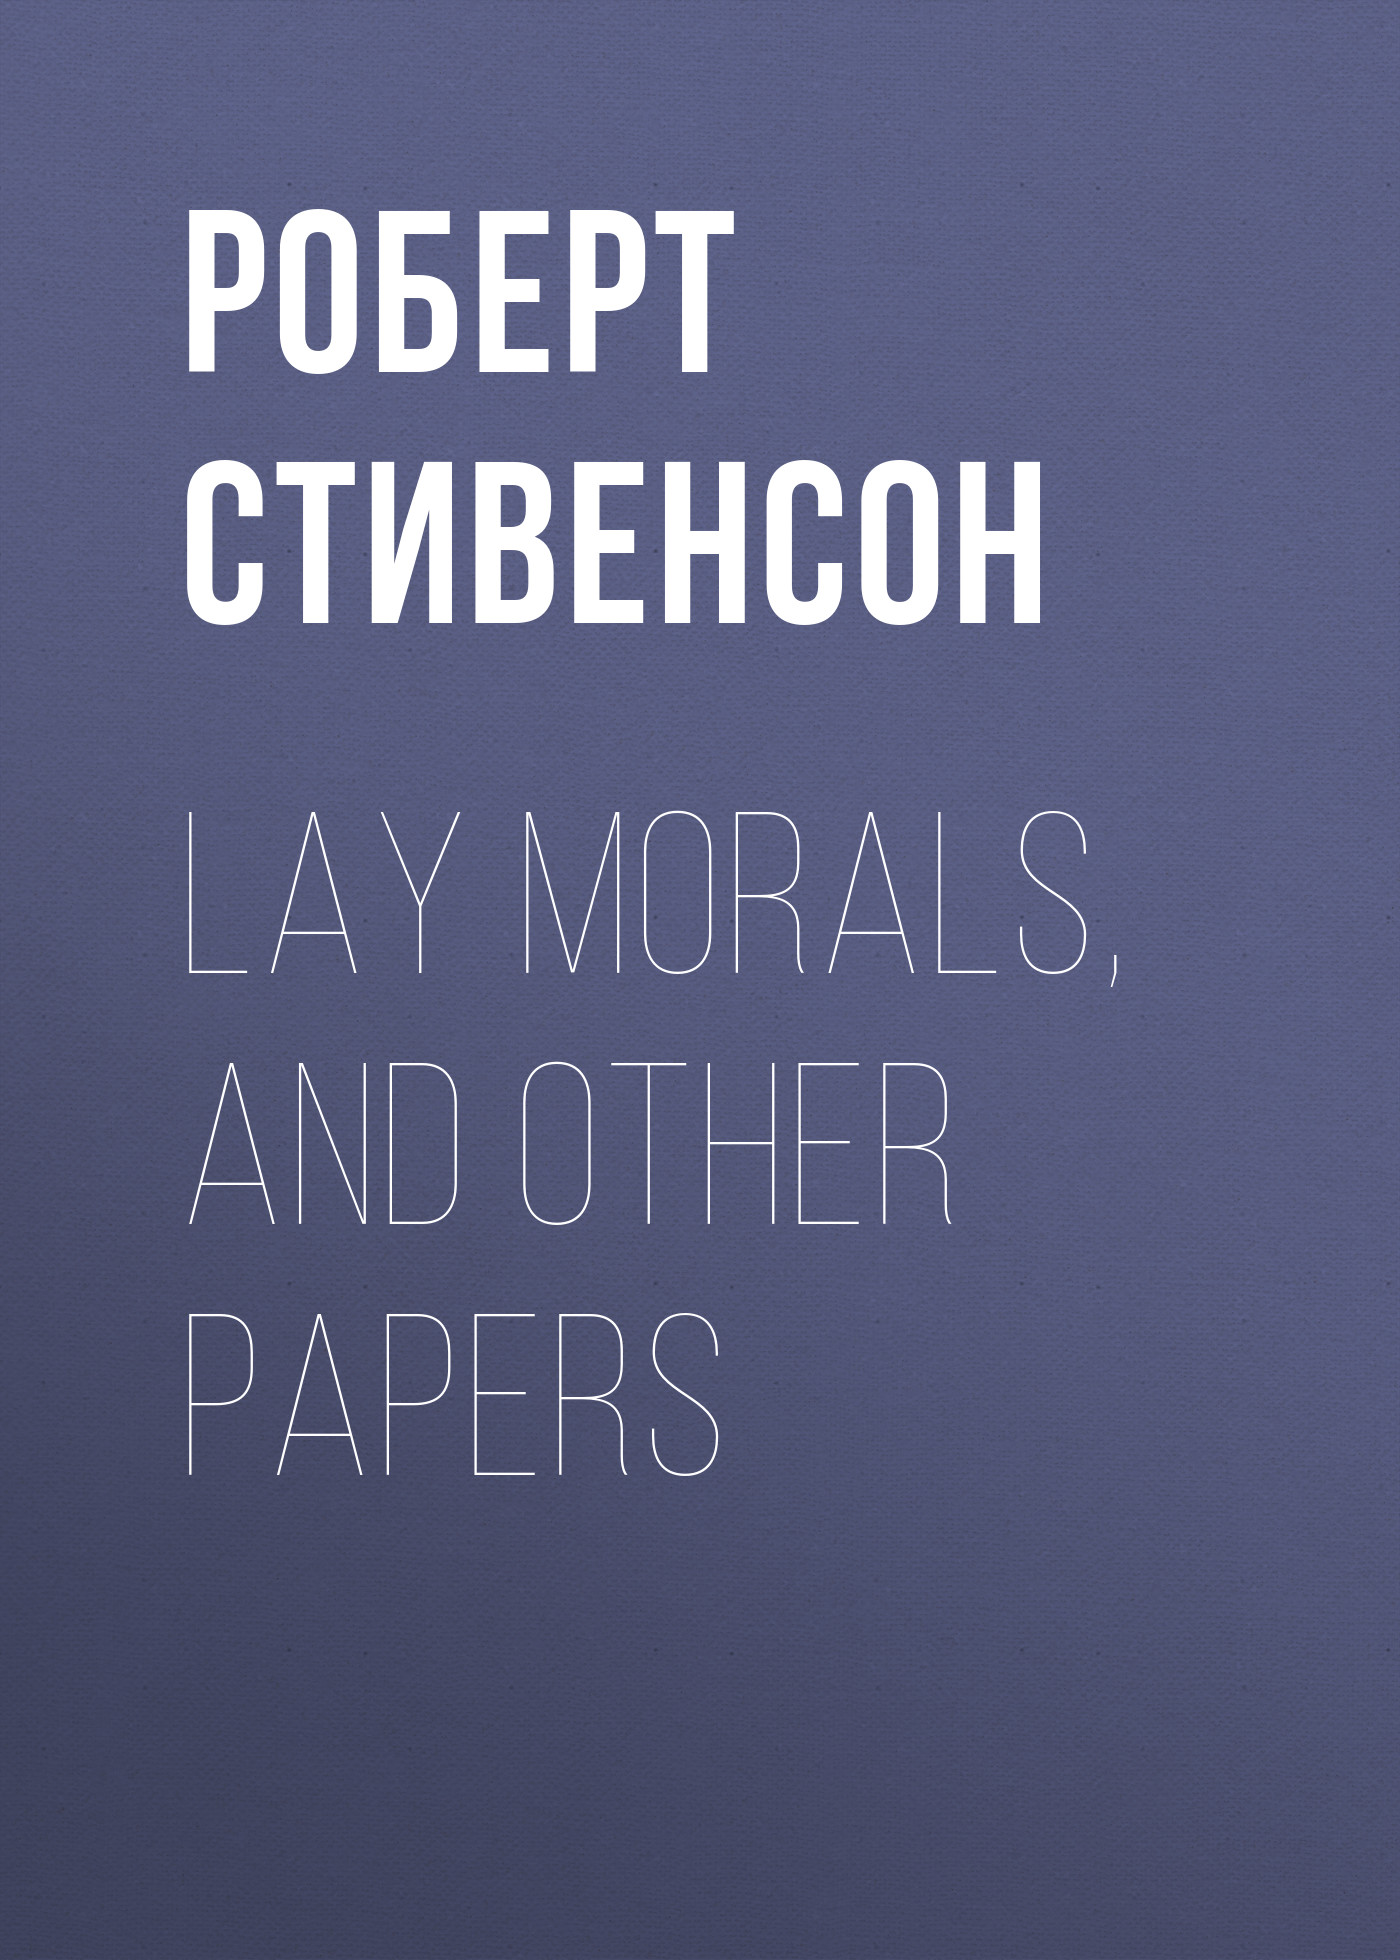 Роберт Льюис Стивенсон Lay Morals, and Other Papers роберт льюис стивенсон fables